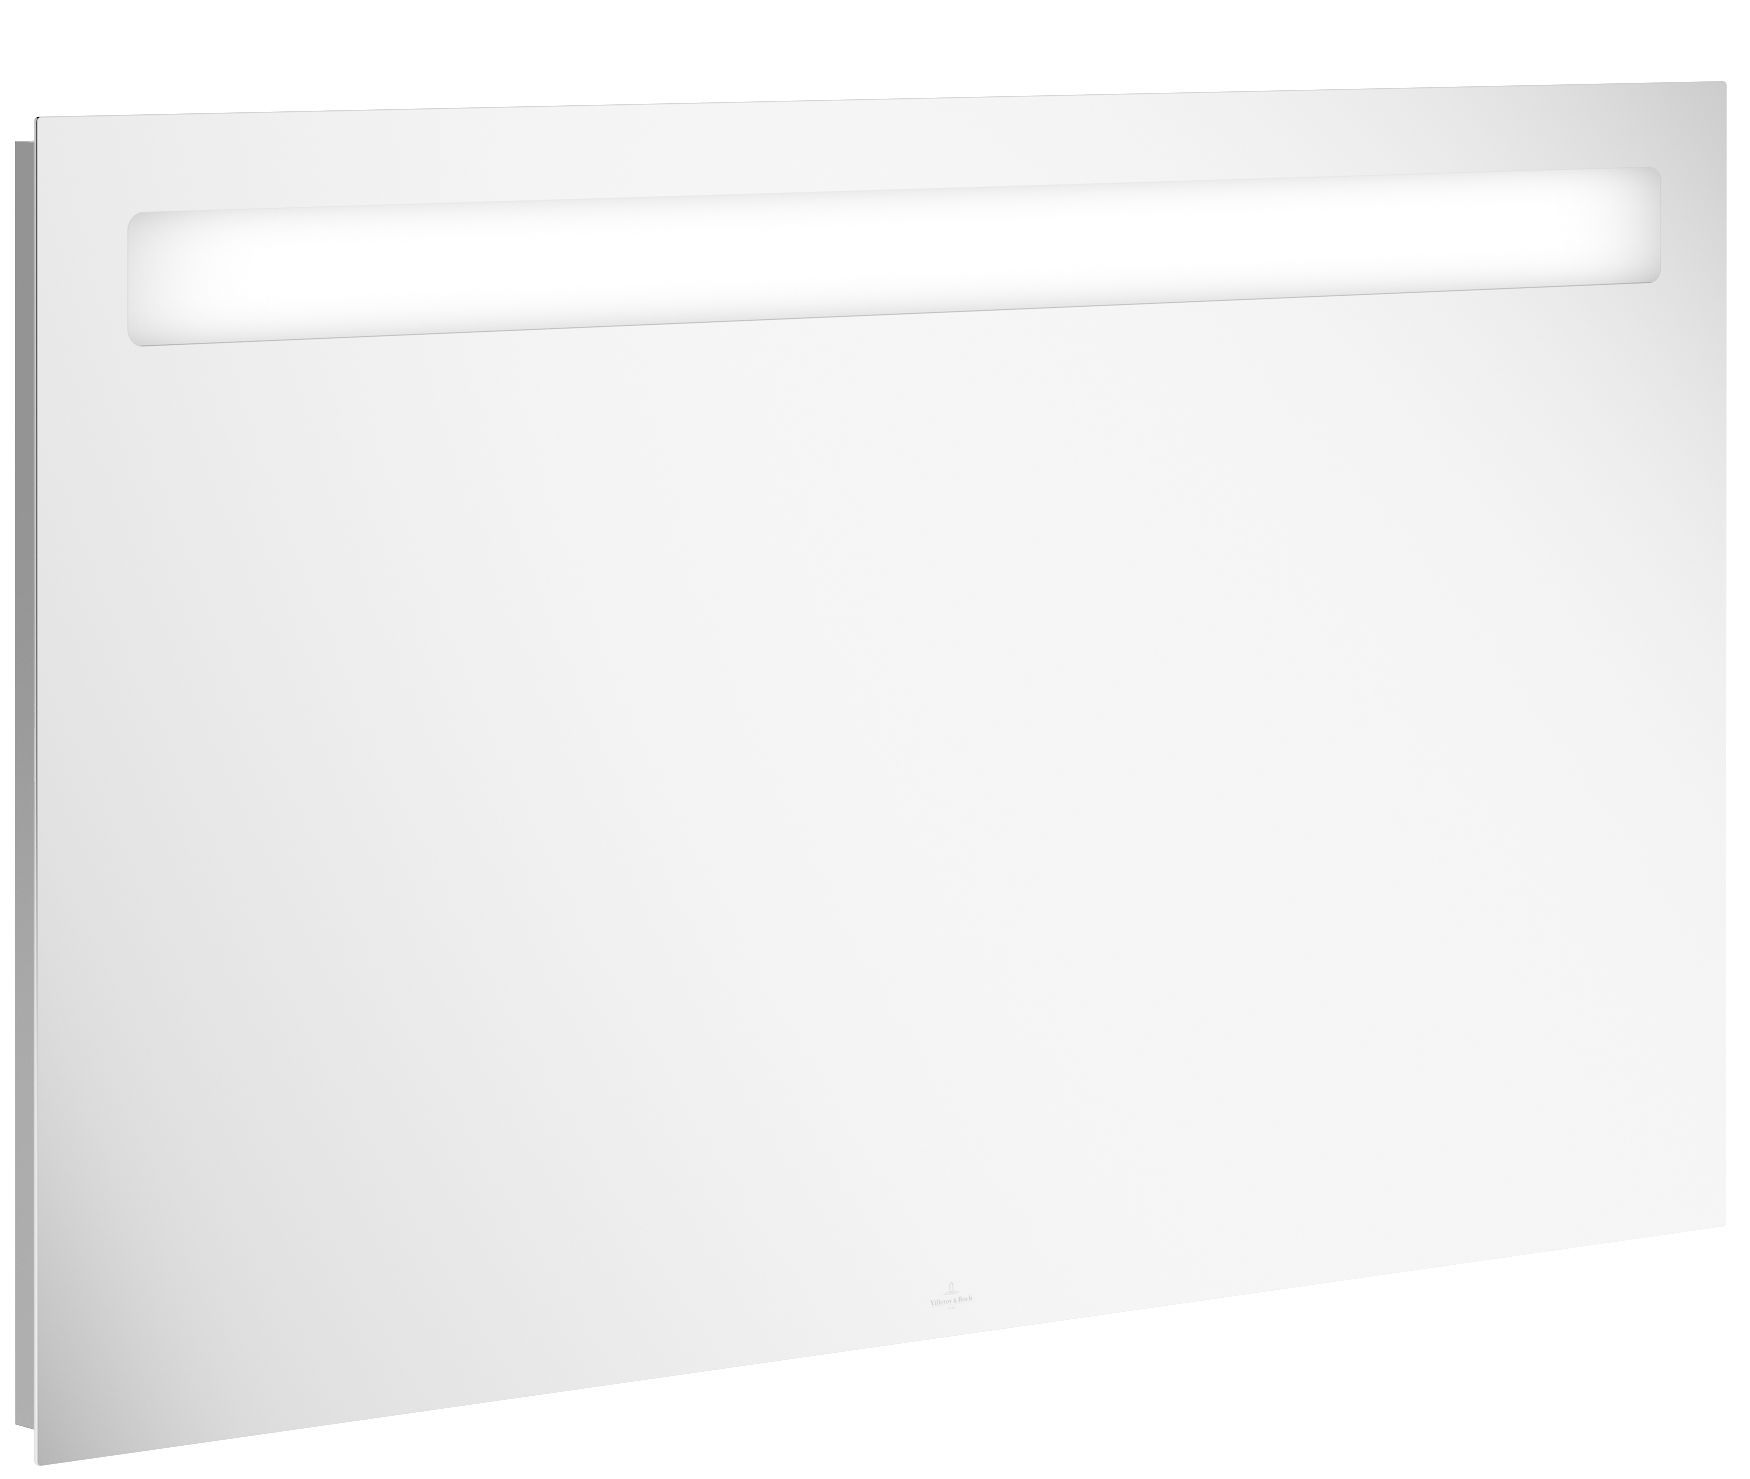 Villeroy & Boch More to See 14 Spiegel mit LED-Beleuchtung B:120 cm A4291200